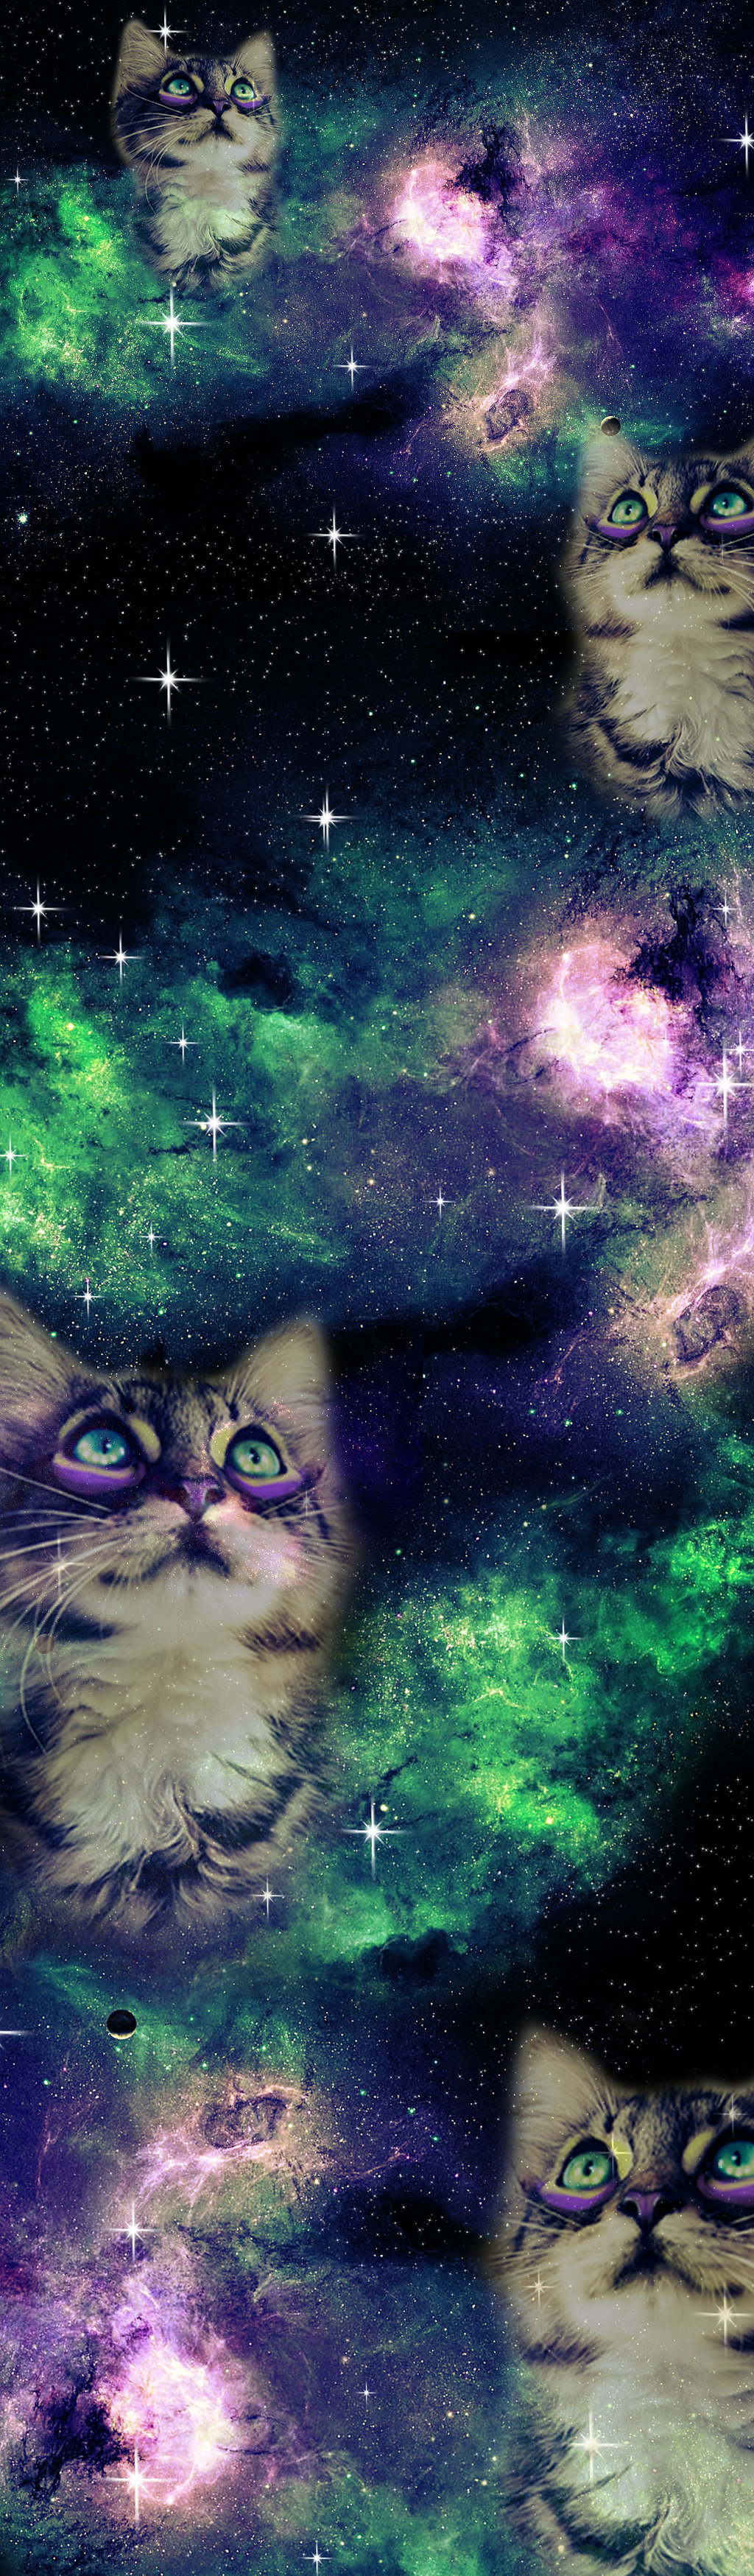 Space Cat Tumblr Backgrounds Galaxy Box Background By 1024x3498